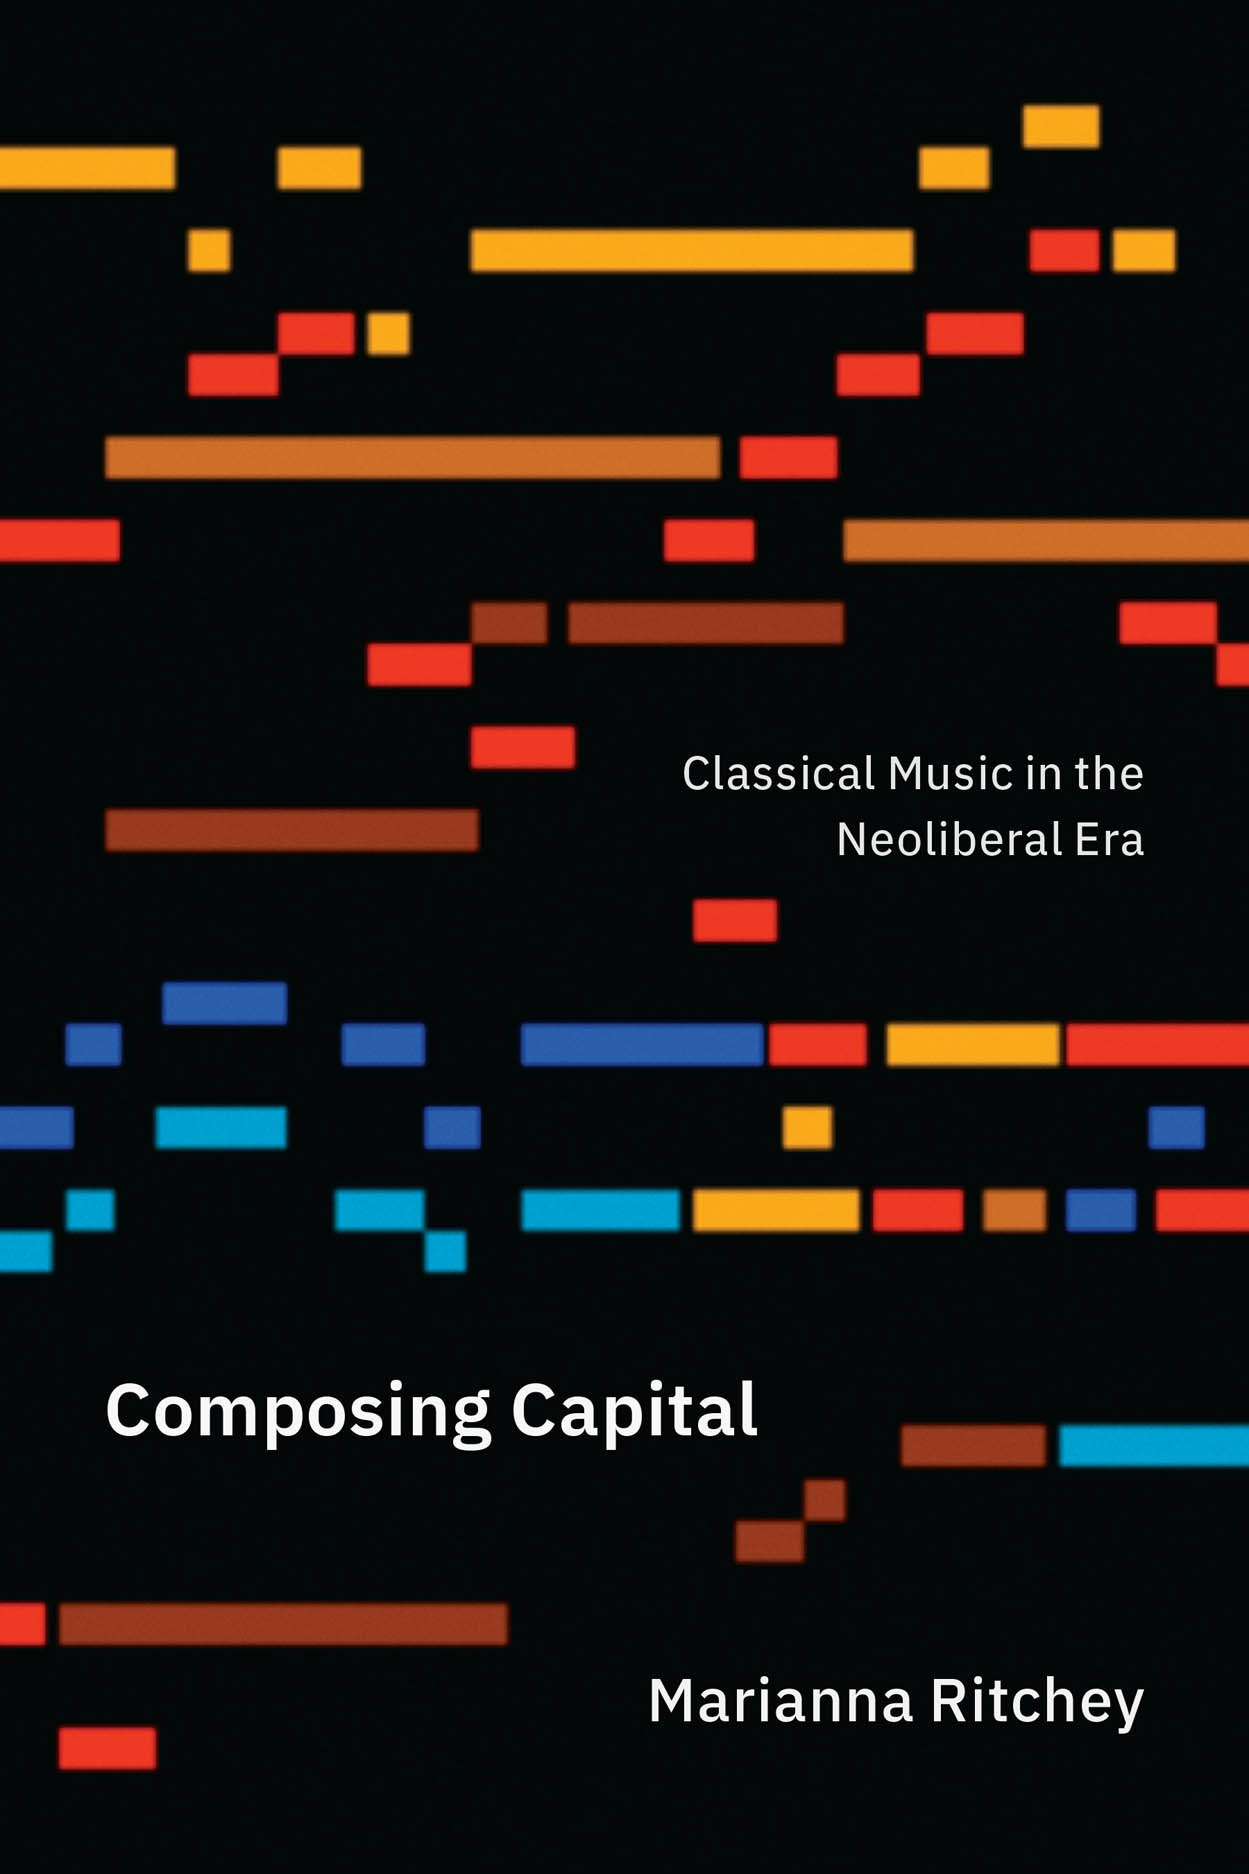 Composing Capital: Classical Music in the Neoliberal Era